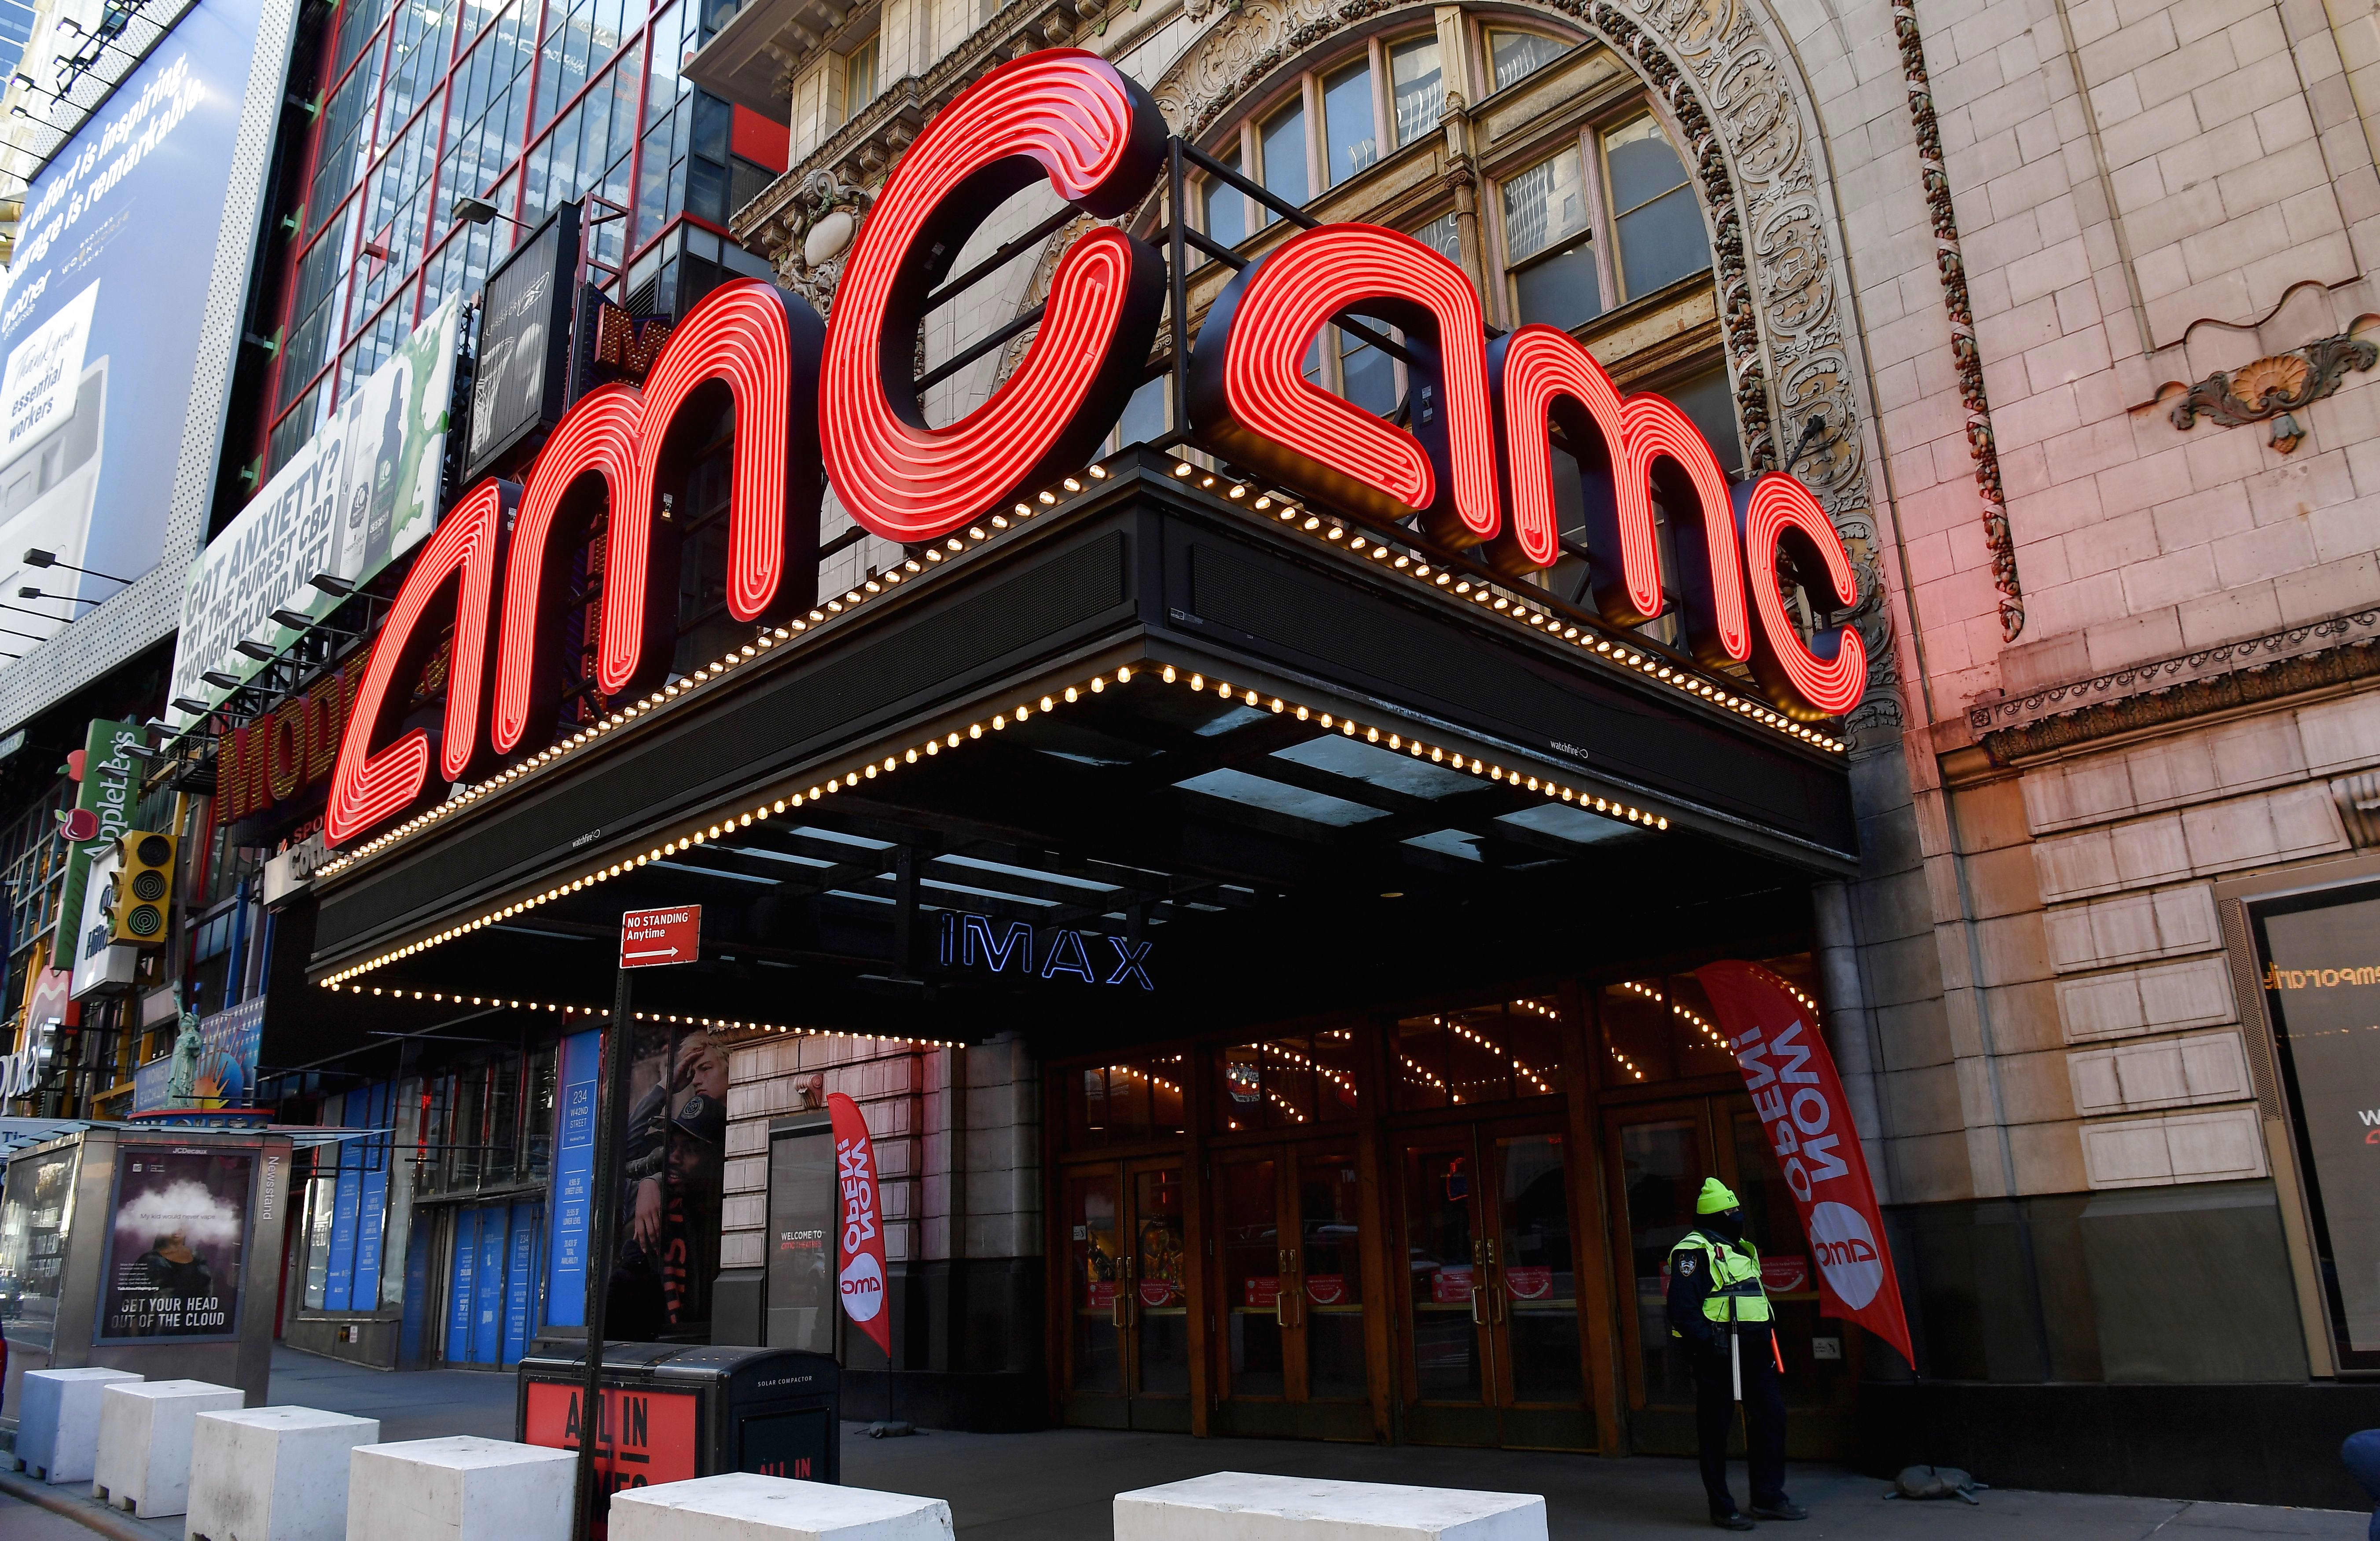 AMC reaches deal with Warner Bros. for 45 days theatrical exclusivity in 2022